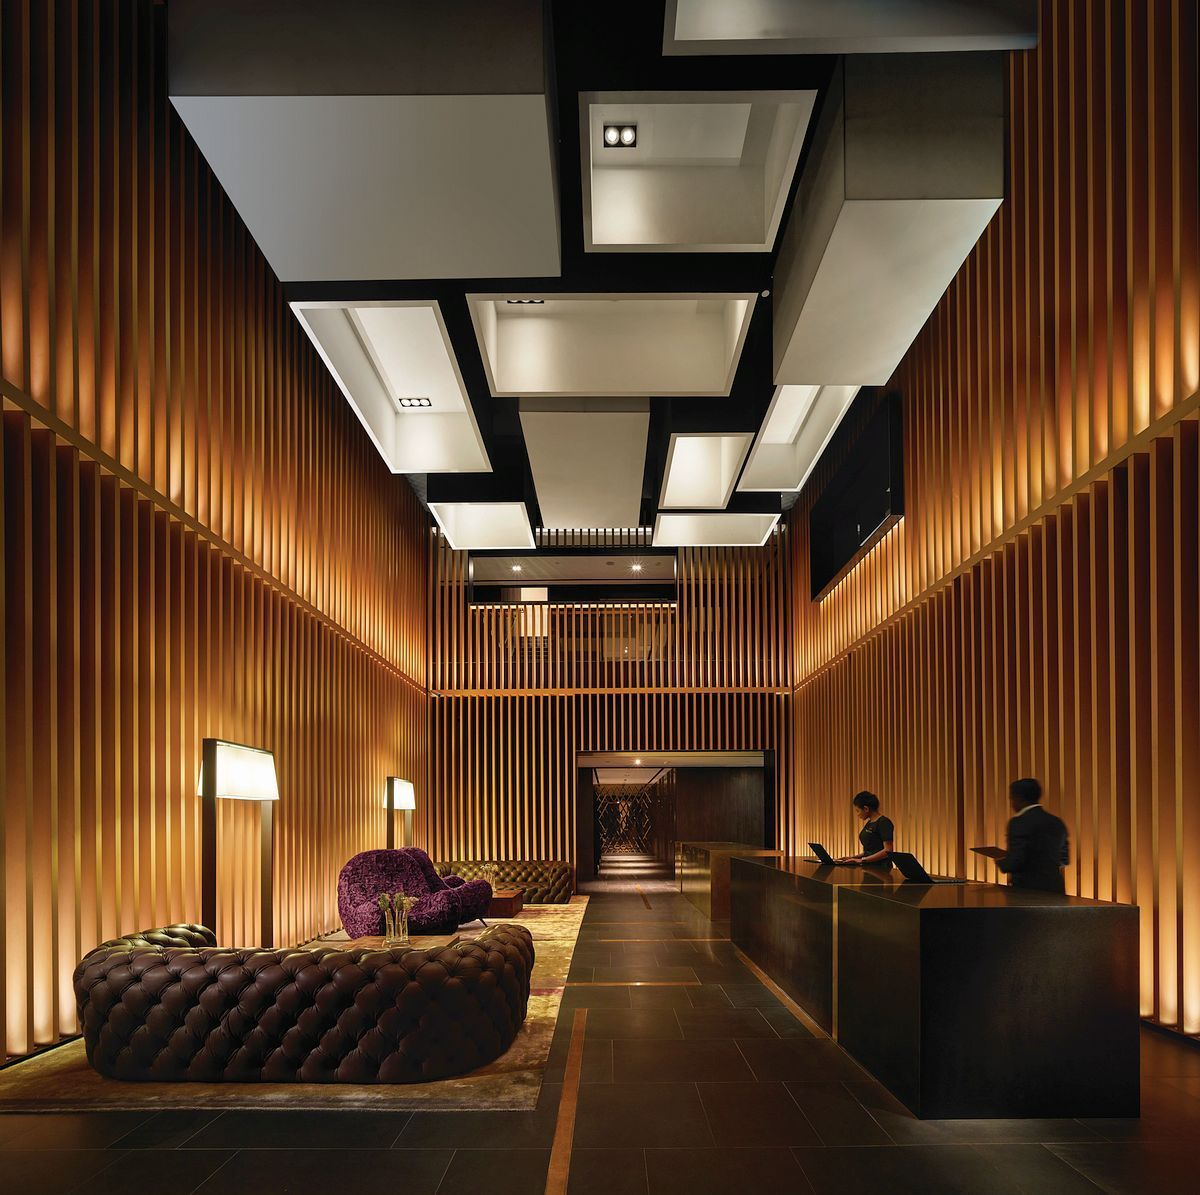 G Hotel Kelawai Malaysia With Its Exquisite In 2020 Lobby Interior Design Hotel Interior Design Interior Architecture Design